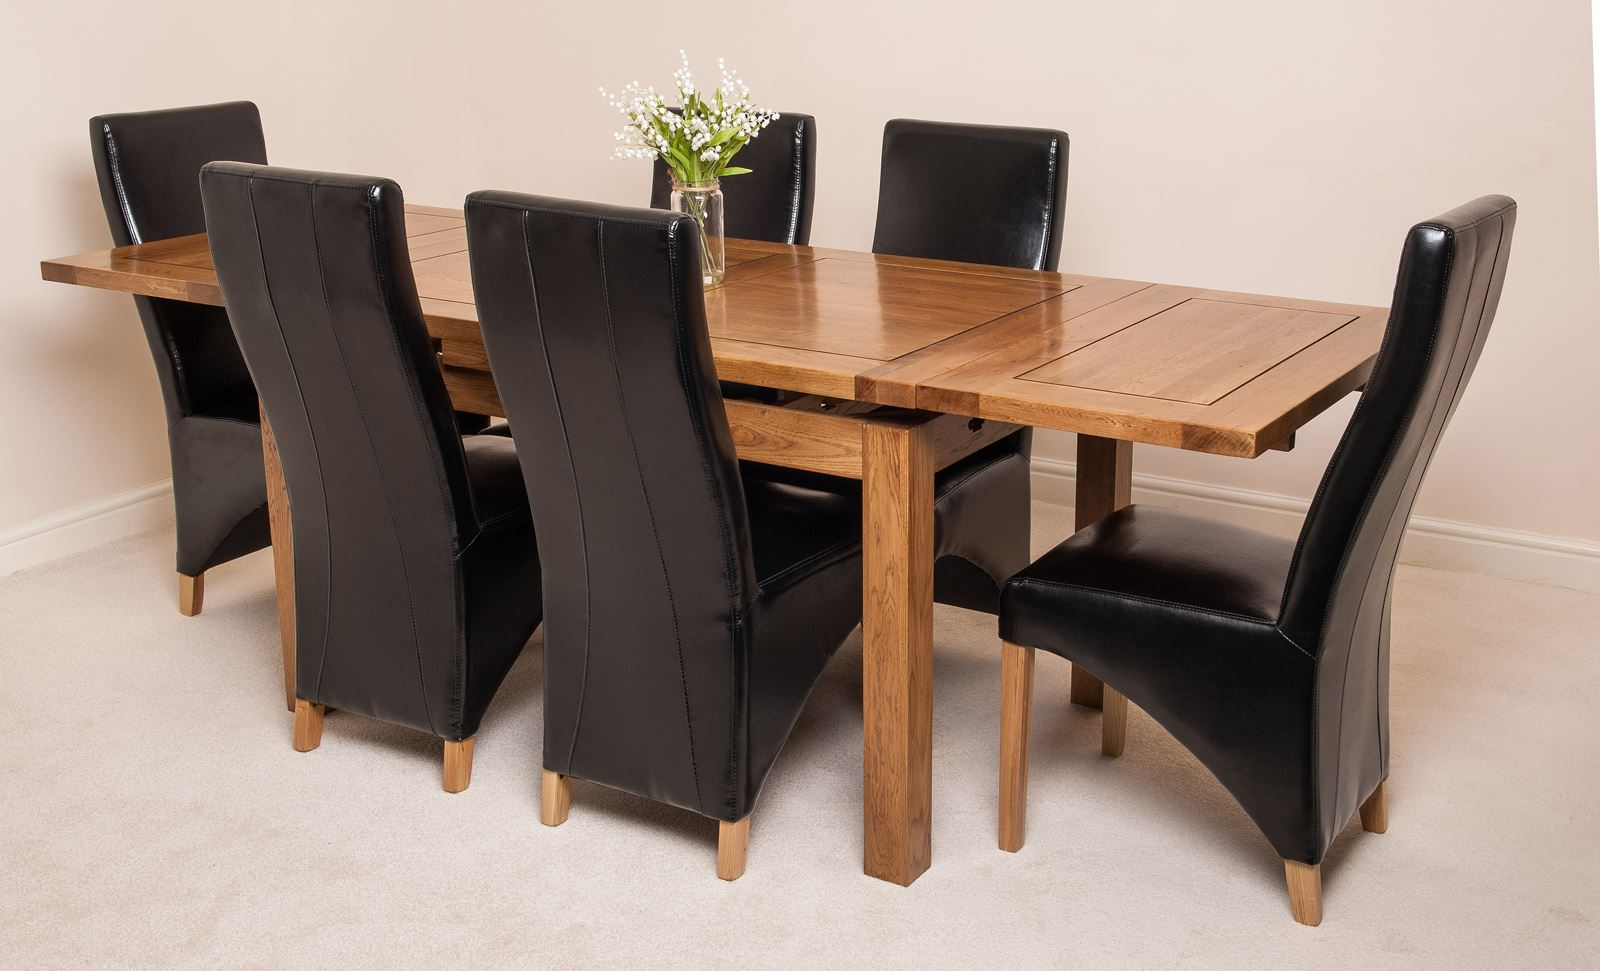 oak farmhouse chairs office waiting room rustic solid 160cm extending dining table